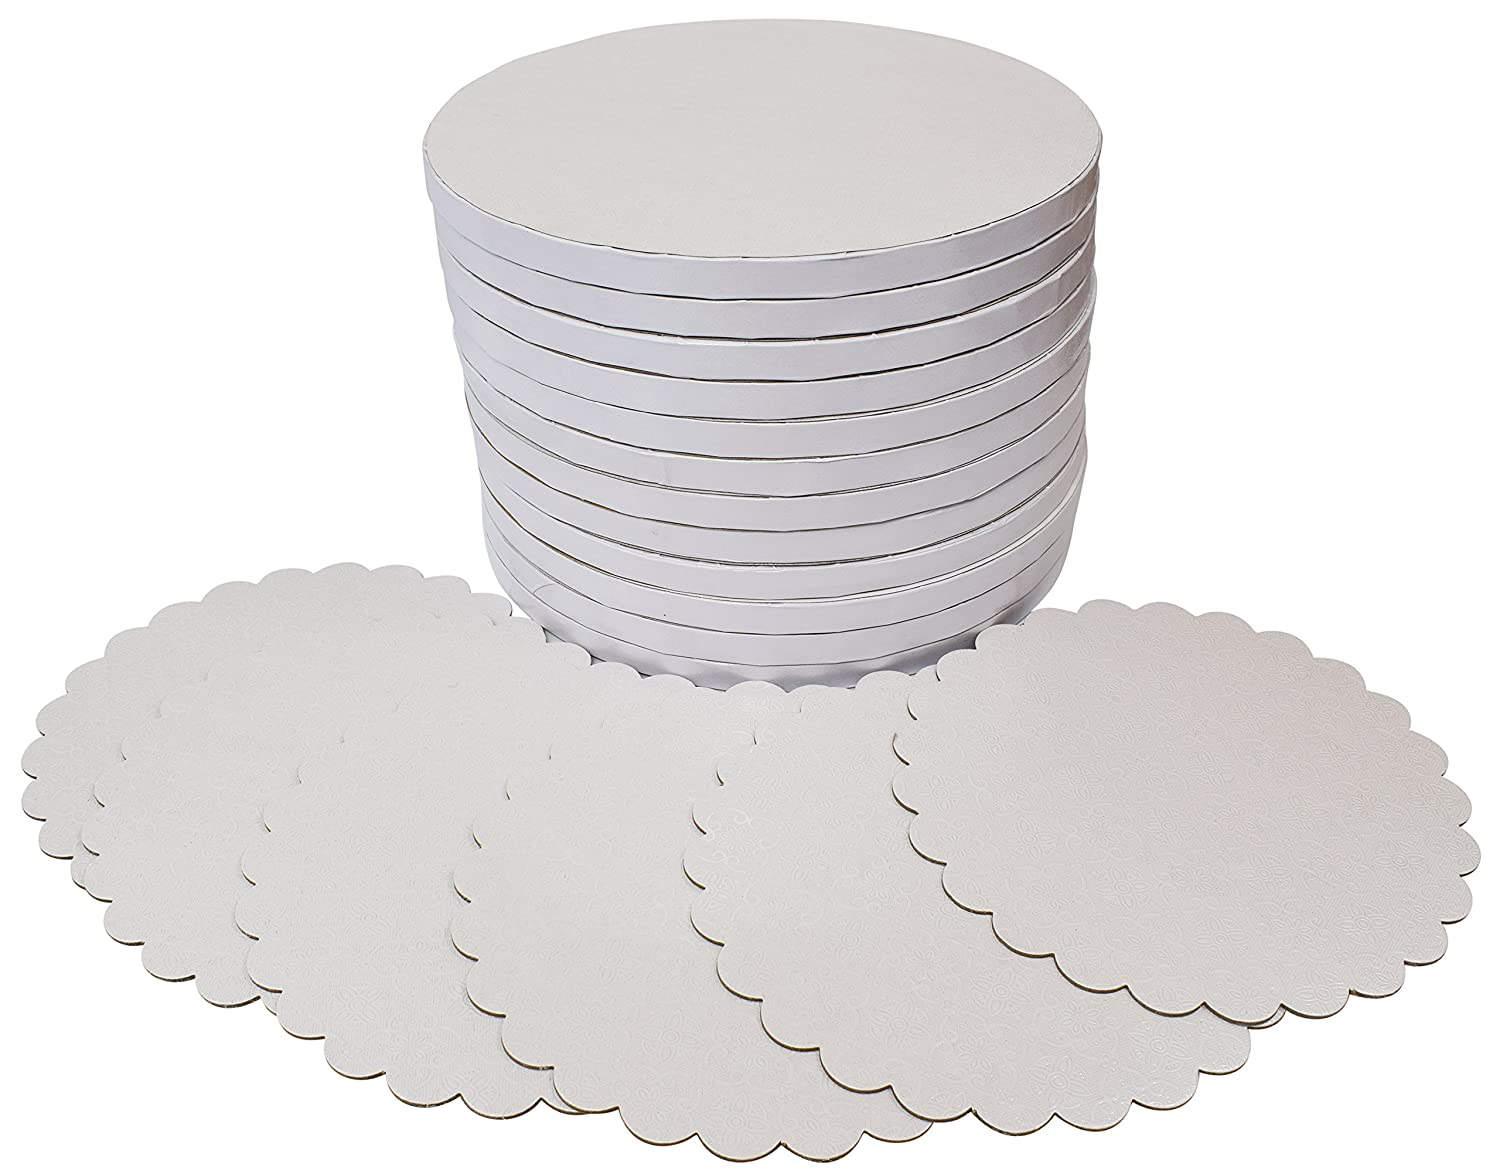 TROLIR 12 Inch White Round Cake Drums, 12 Pack, Smooth Edge, Sturdy and Greaseproof Boards of 1/2 Inch Thick Corrugated Paper, Covered With PET Film of Flower Pattern, Bonus - 6 Scalloped-Edge Pads TR-RCD-12-12-WT